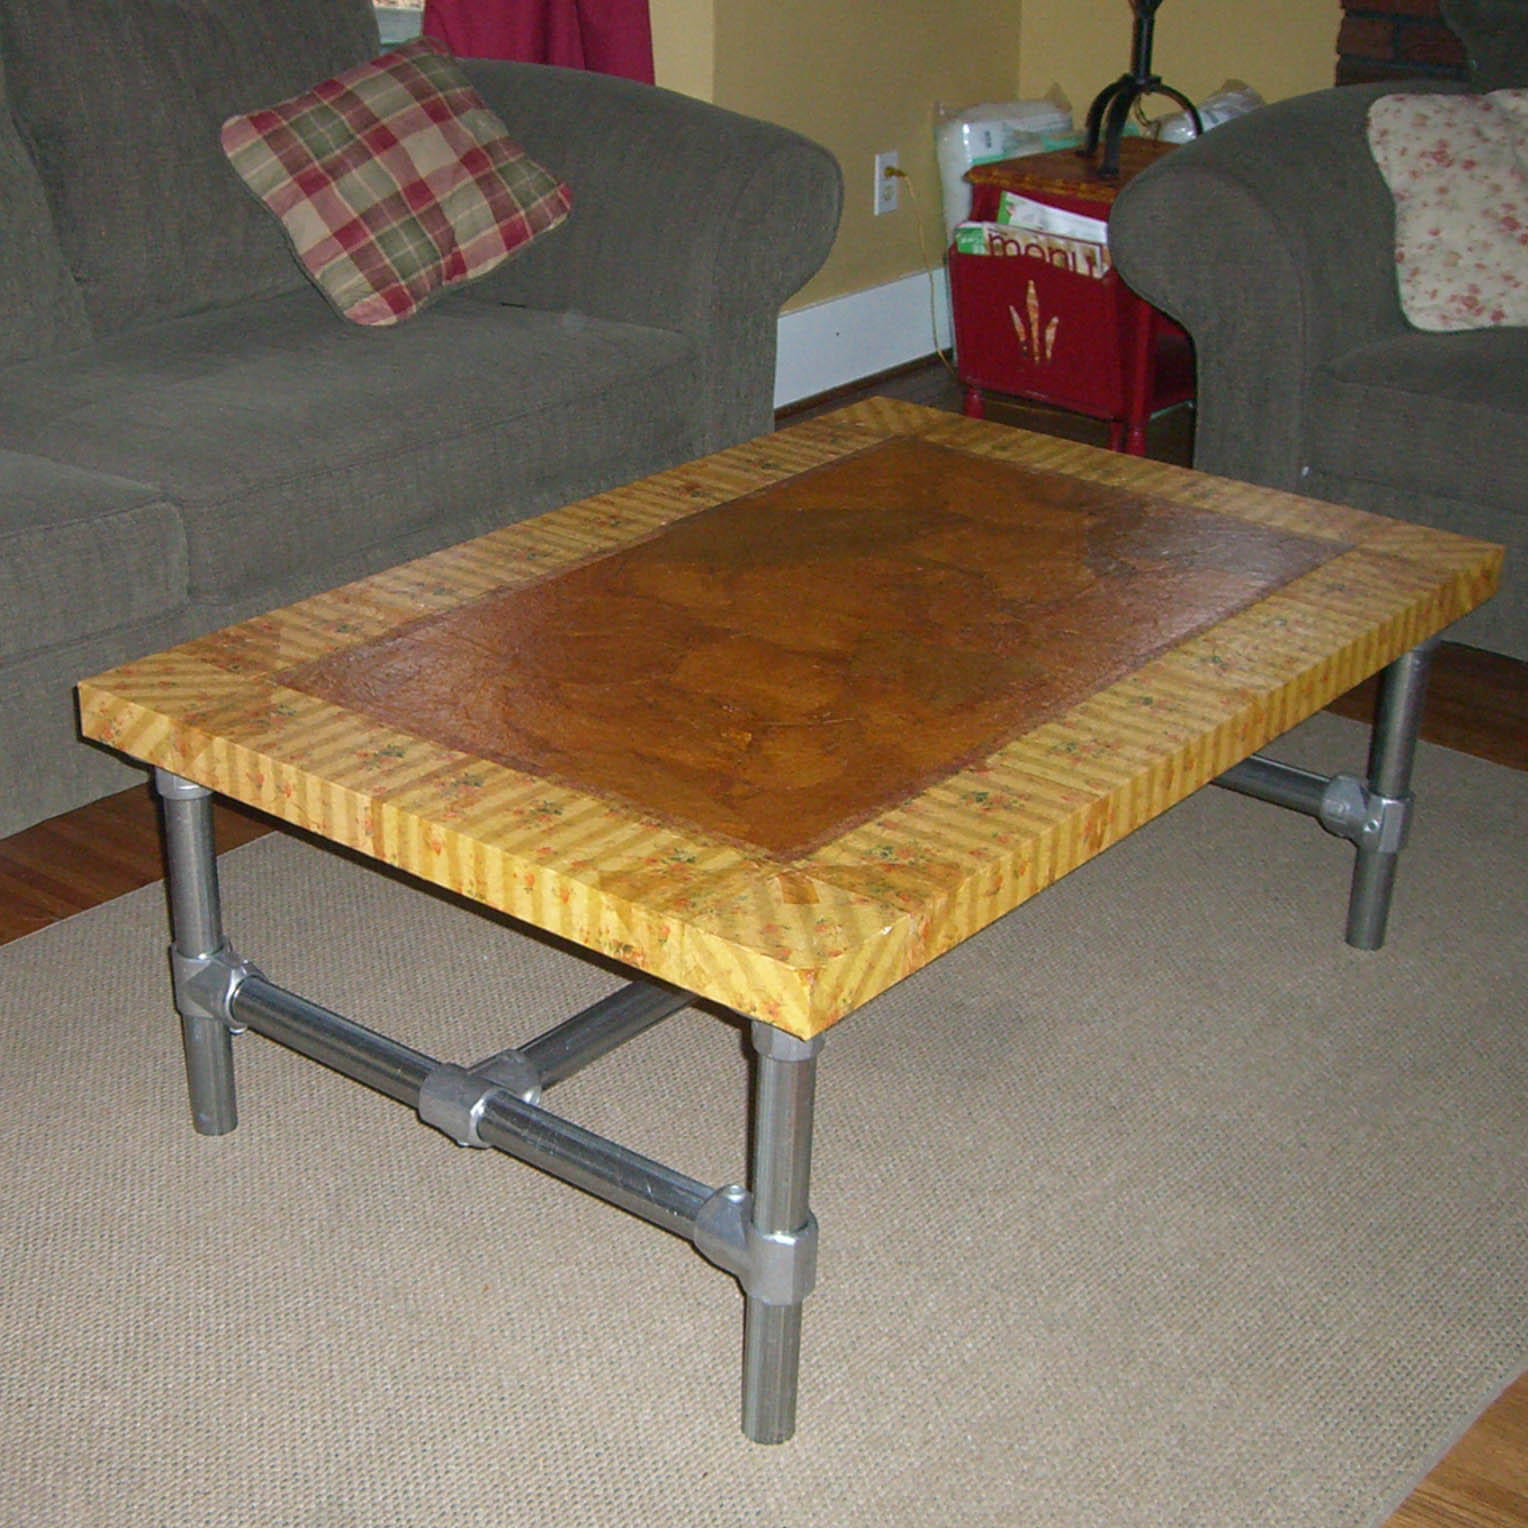 Coffee Table (Hack of IKEA LACK)